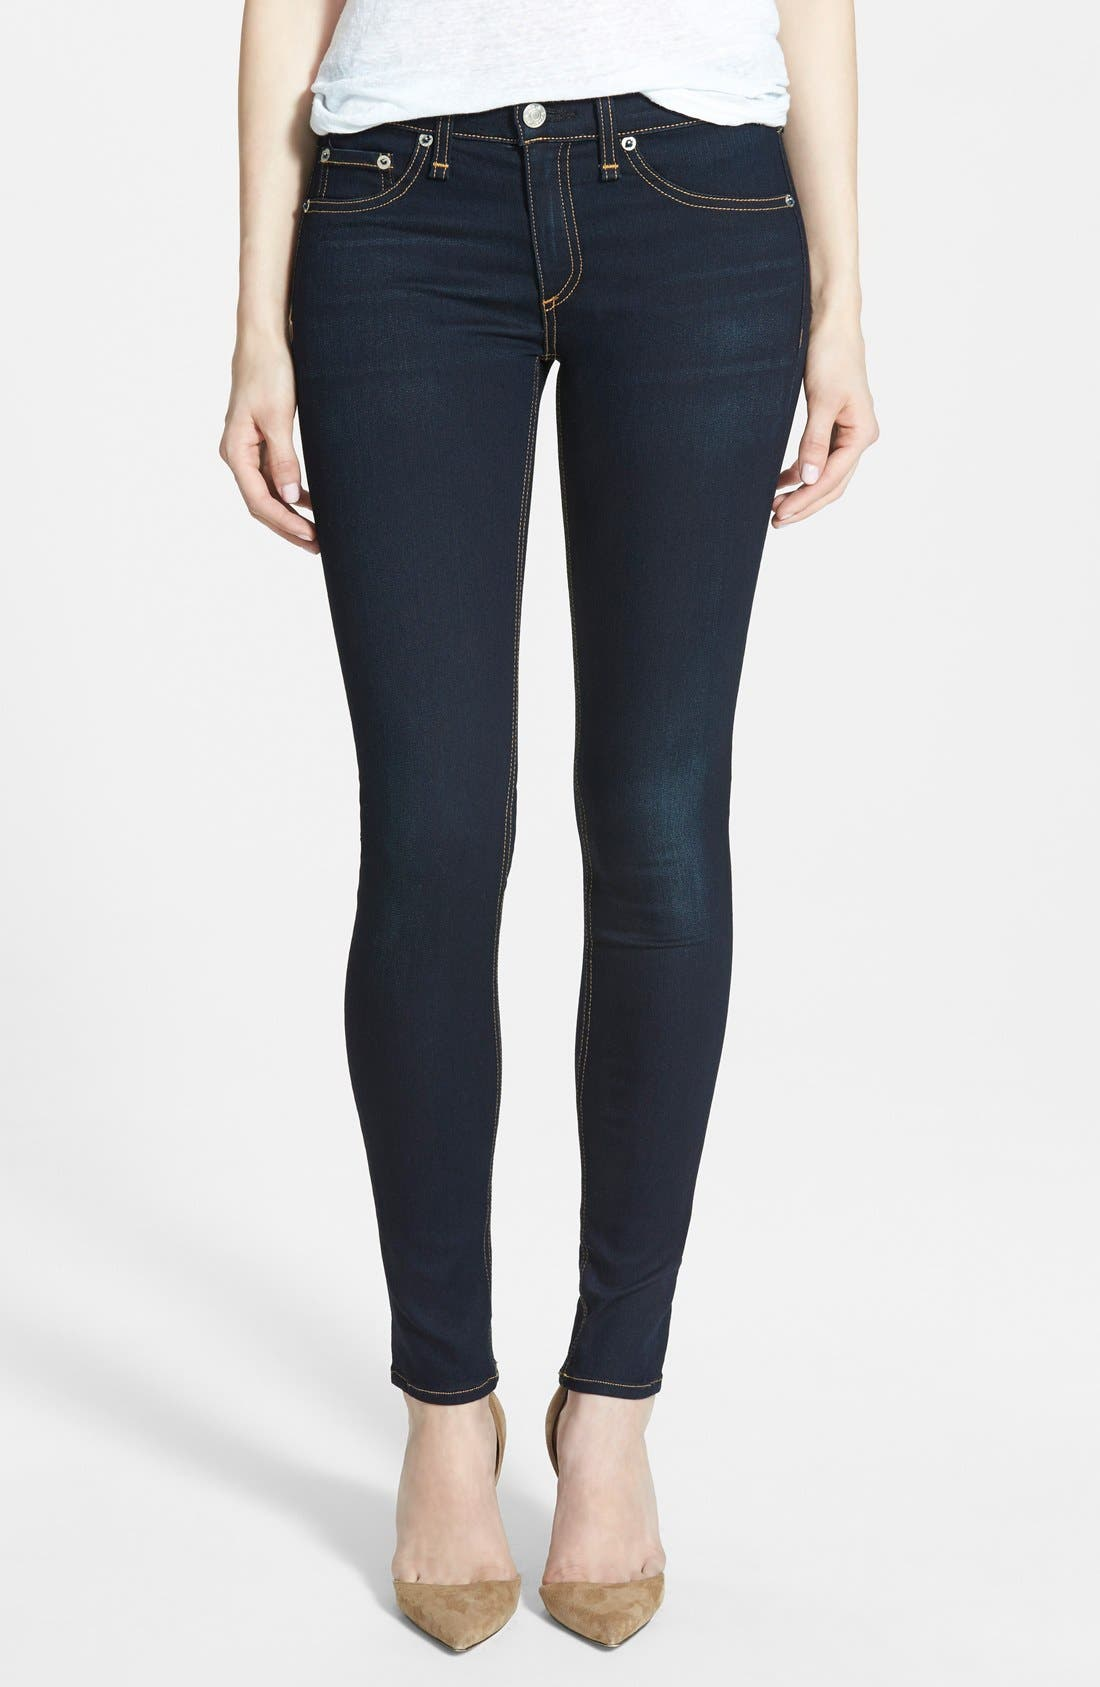 Main Image - rag & bone/JEAN 'The Skinny' Mid Rise Jeans (Coventry)